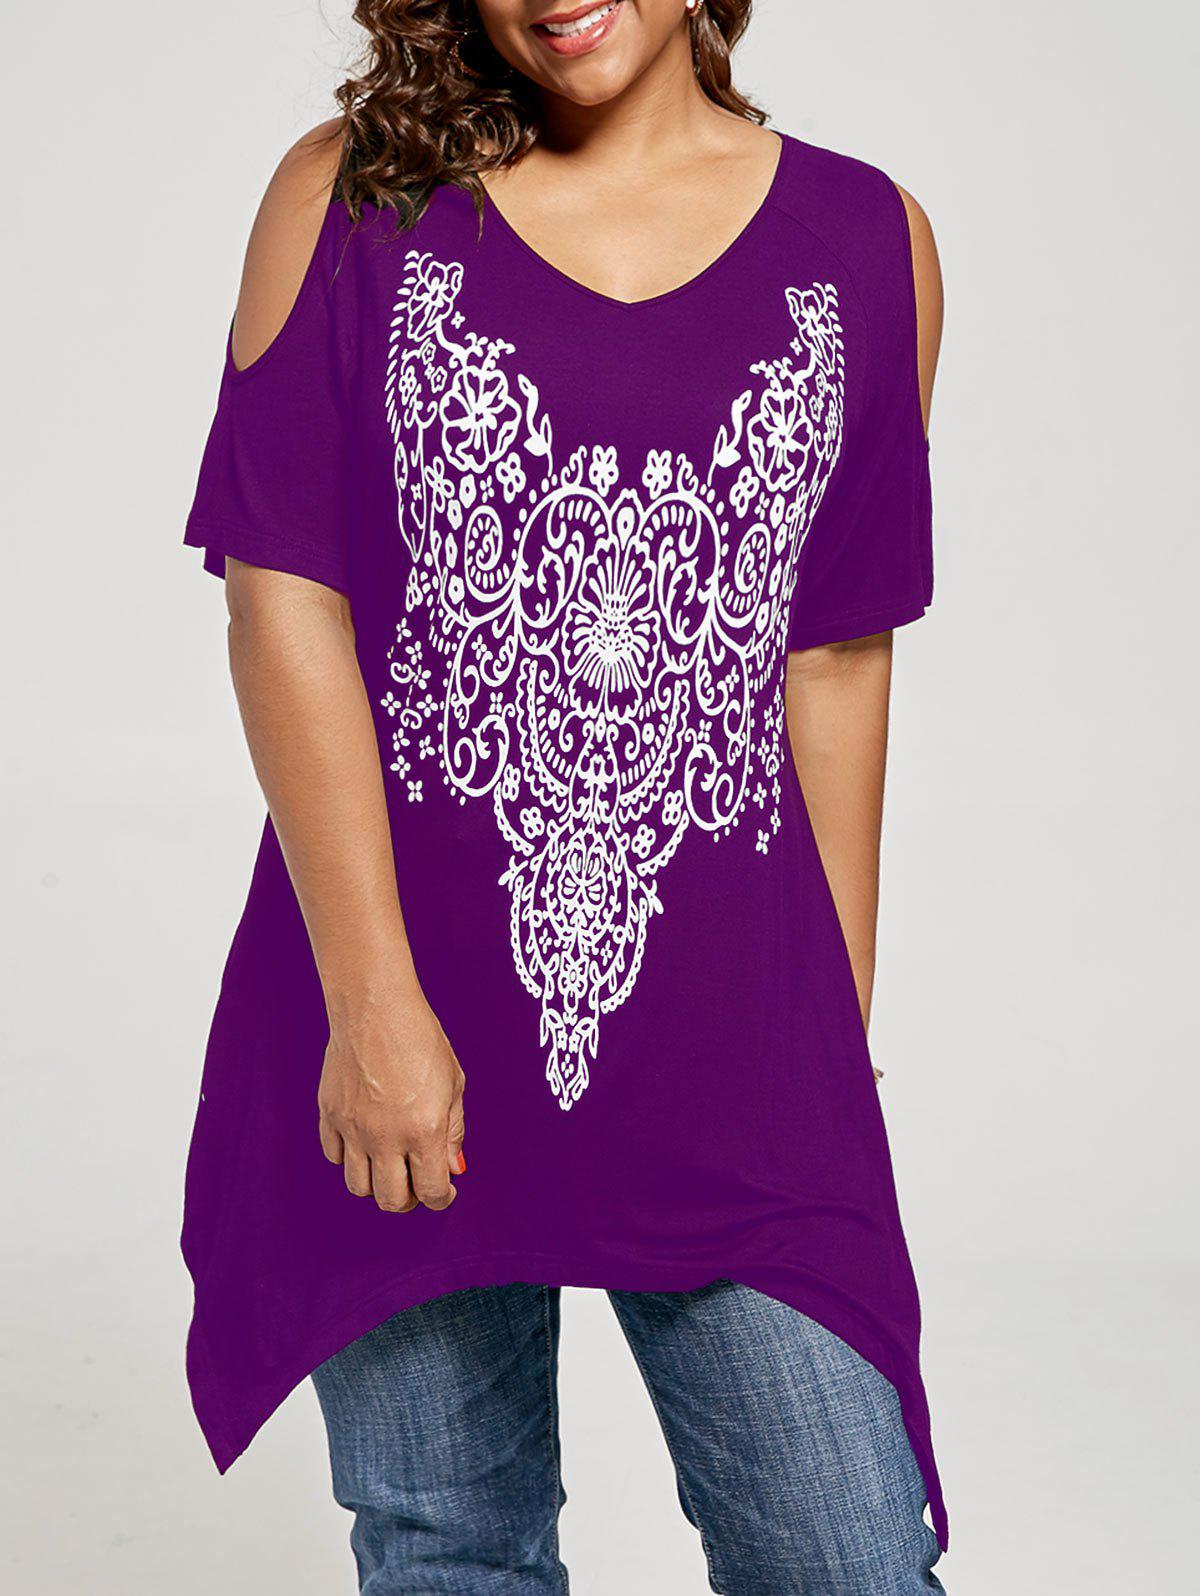 Plus Size Cold Shoulder Tunic TopWOMEN<br><br>Size: 4XL; Color: PURPLE; Material: Rayon,Spandex; Shirt Length: Long; Sleeve Length: Short; Collar: V-Neck; Style: Casual; Season: Summer; Pattern Type: Others; Weight: 0.3020kg; Package Contents: 1 x T-shirt;